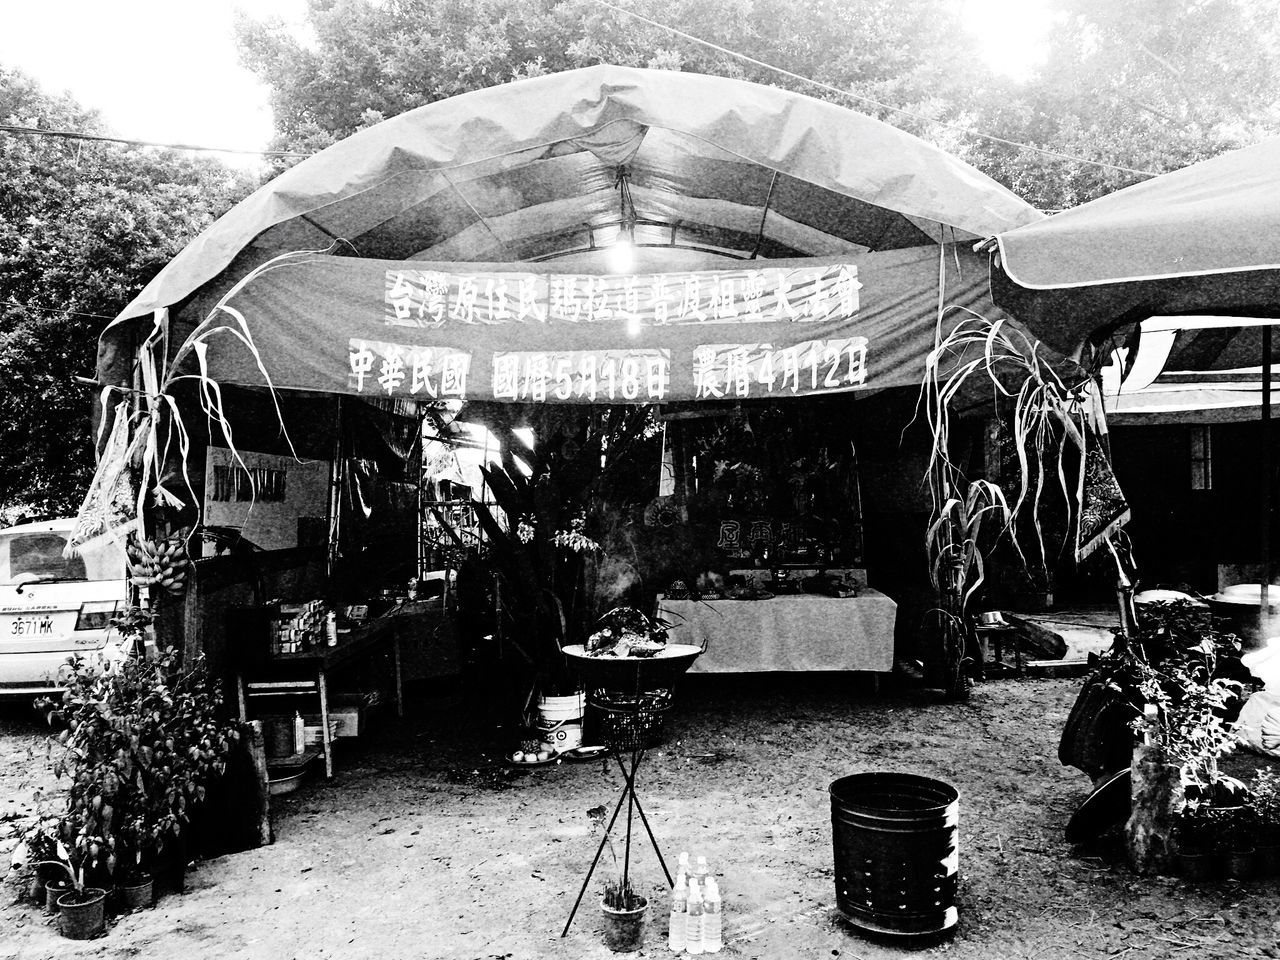 Festivals。 EyeEm Gallery EyeEm Best Shots - Black + White 2016 EyeEm Awards Everything In Its Place How Do We Build The World? EyeEmBestPics The Tourist People Photography Natives Traditional Culture Habitat Festival Enjoying Life Sanxia